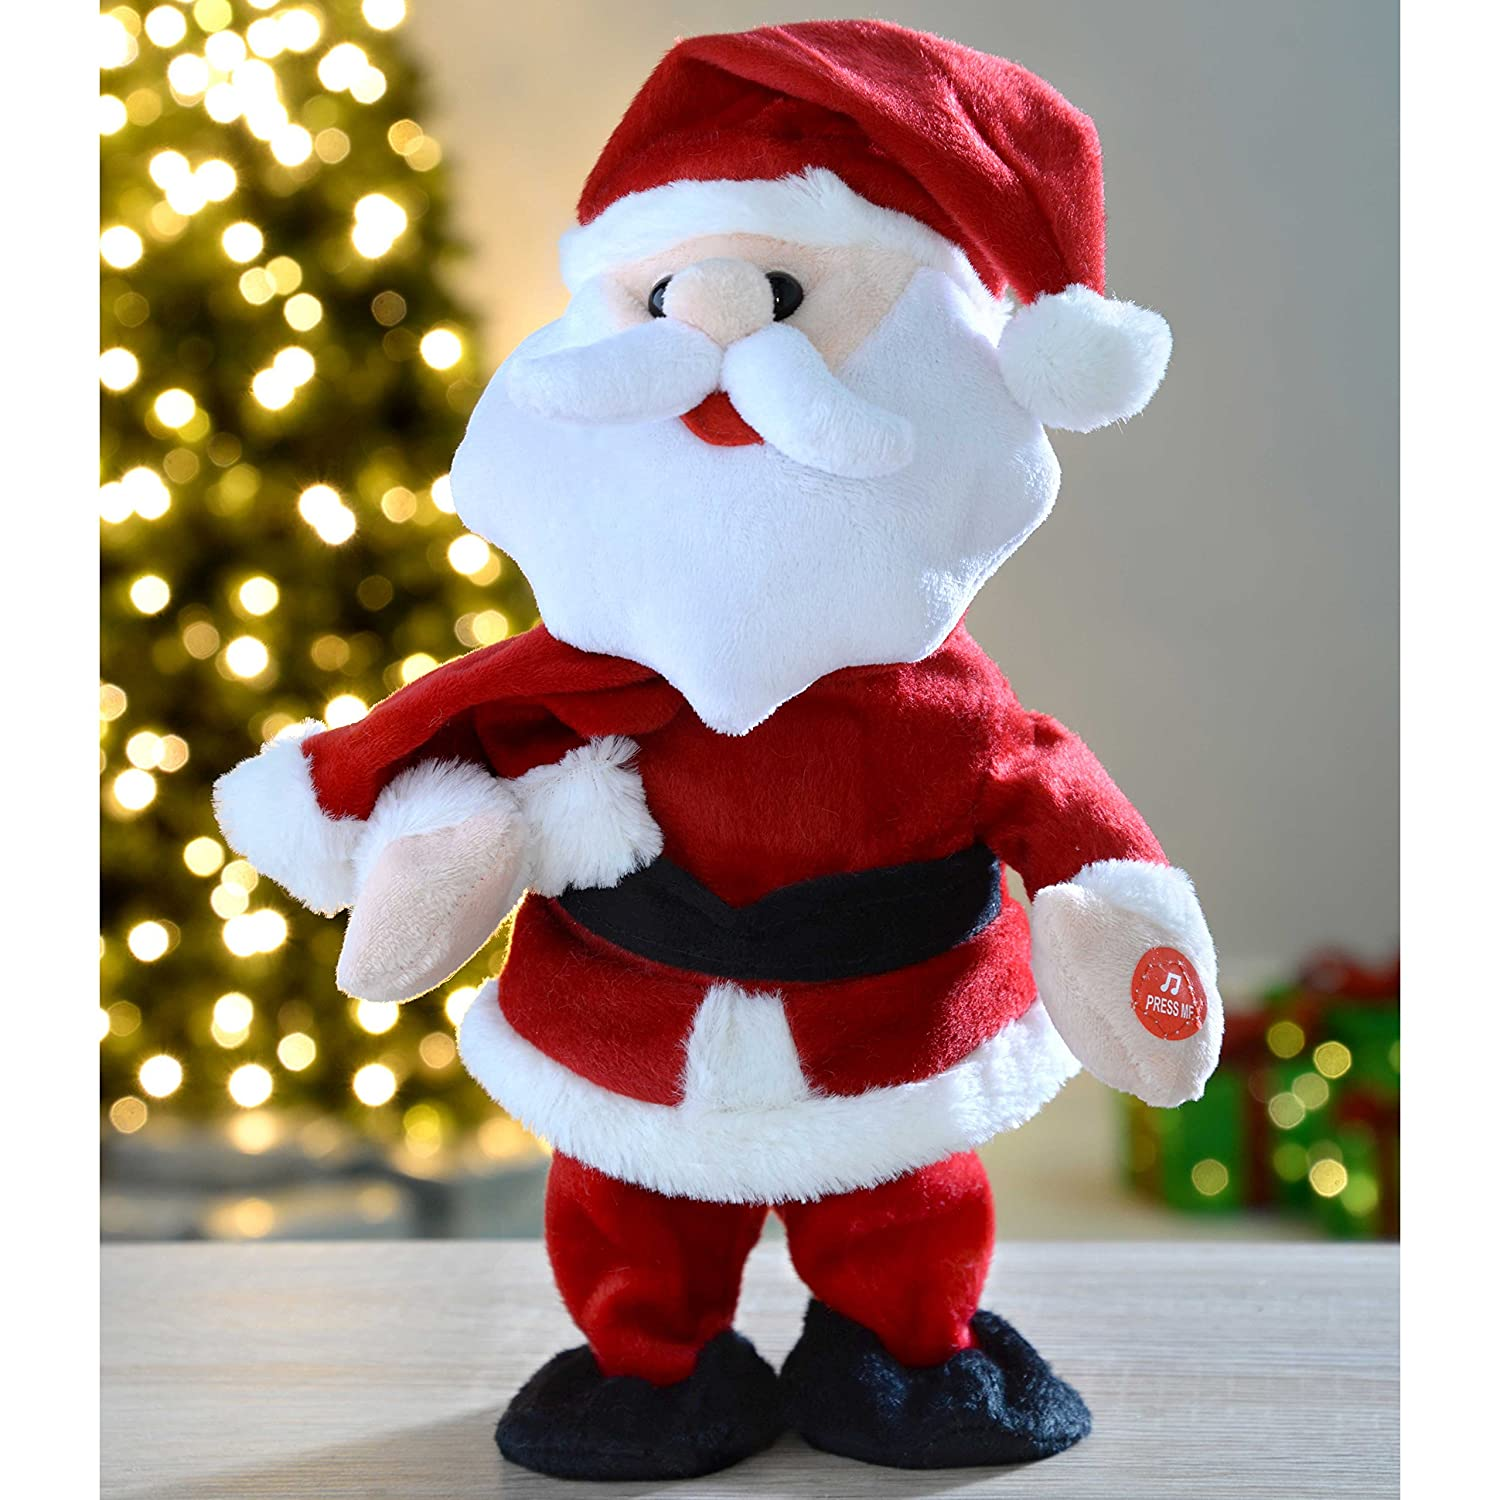 b08feab400 WeRChristmas Walking/Dancing and Singing Santa Christmas Decoration, 30 cm:  Amazon.co.uk: Kitchen & Home